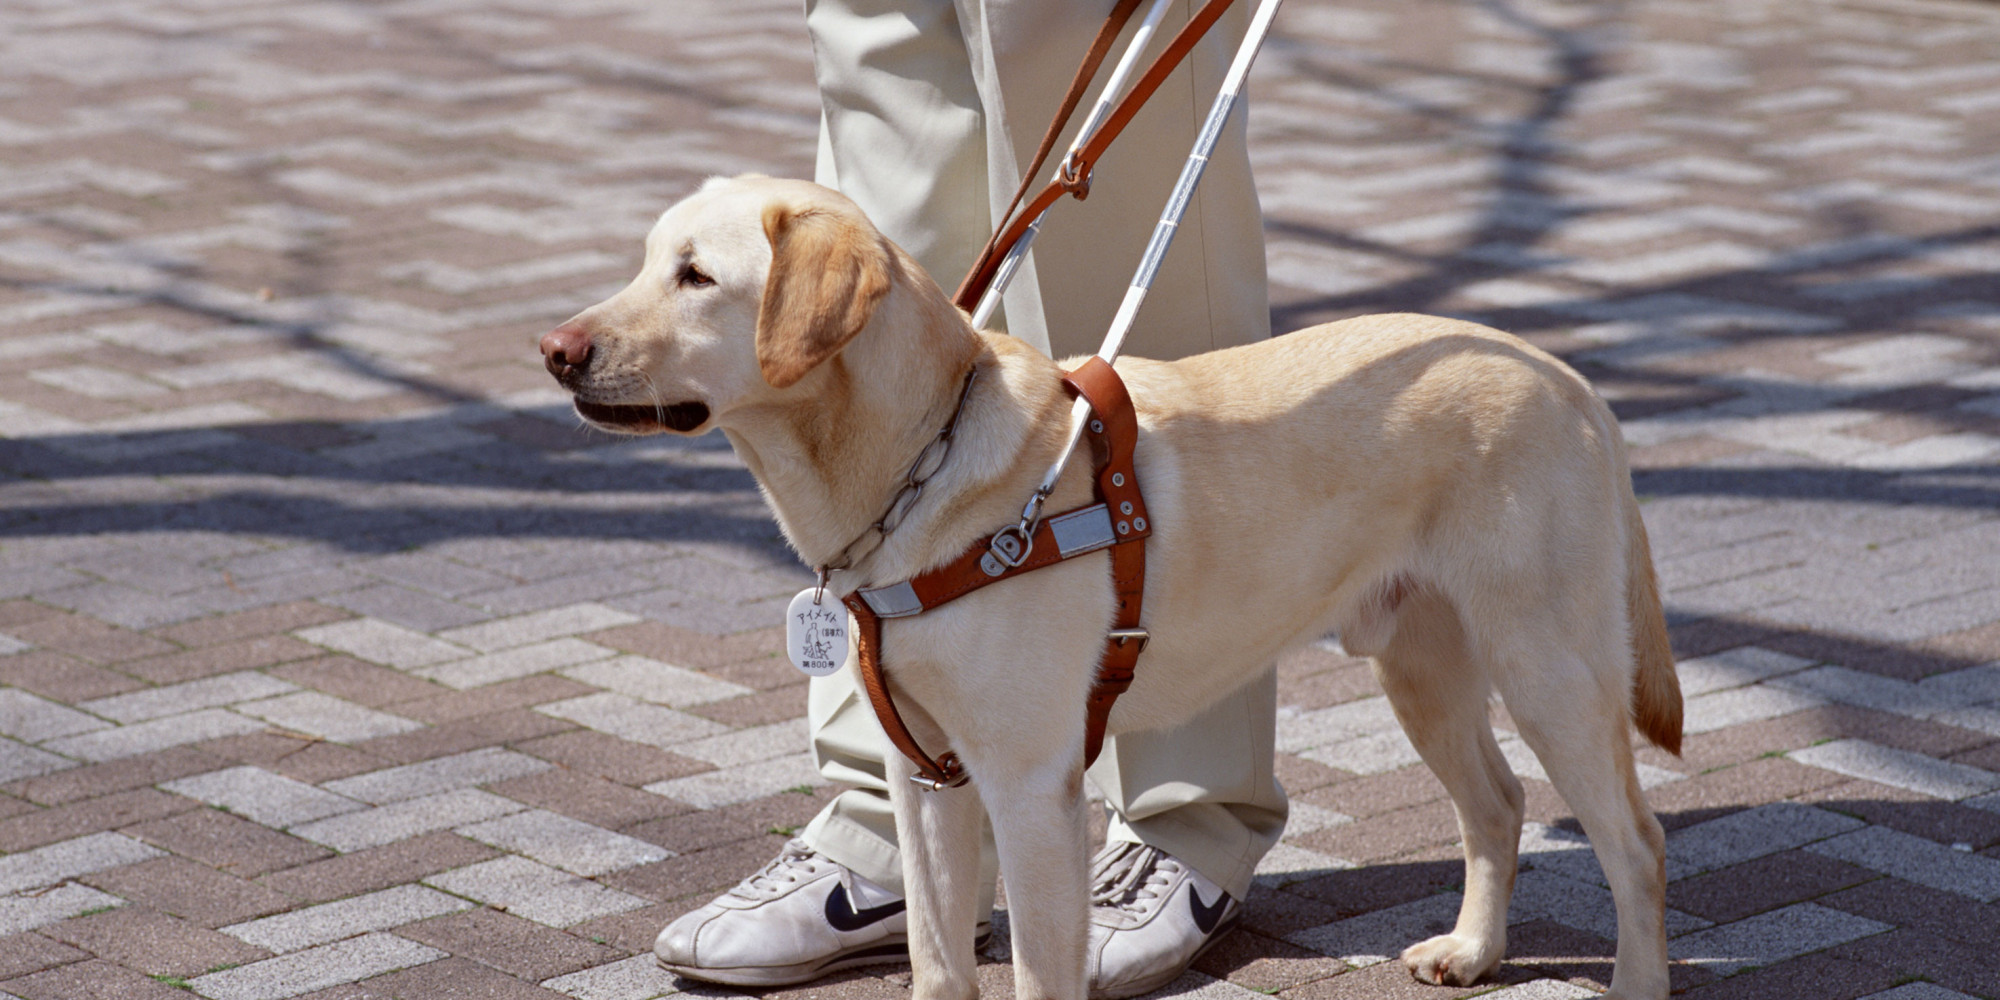 How To Get A Seeing Eye Dog For The Blind